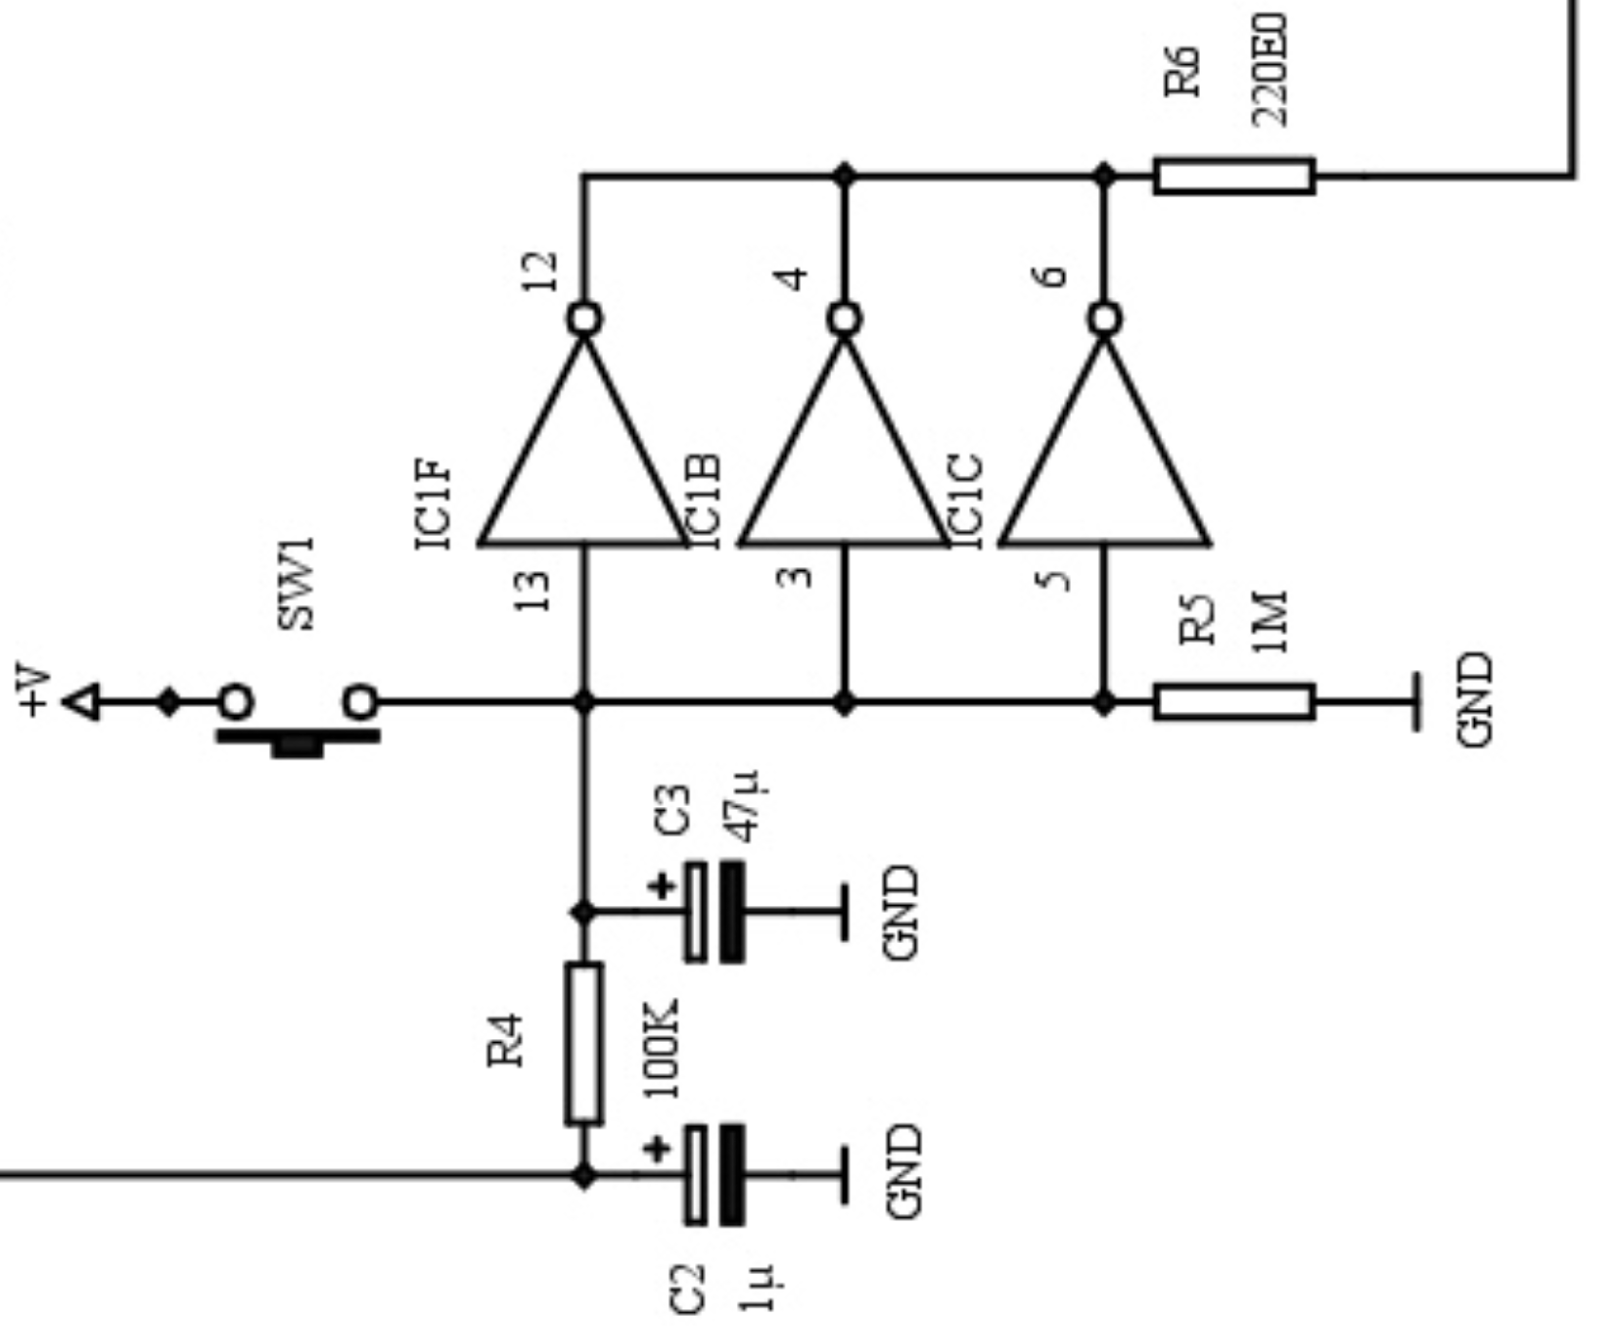 Glenn K Lockwood Learning Electronics With Roulette Datasheets Here Is The Circuit Schematic For Demonstration Board Aside From Cd4017be Decade Counter This Really Has Two Distinct Sections First Section Handles Input